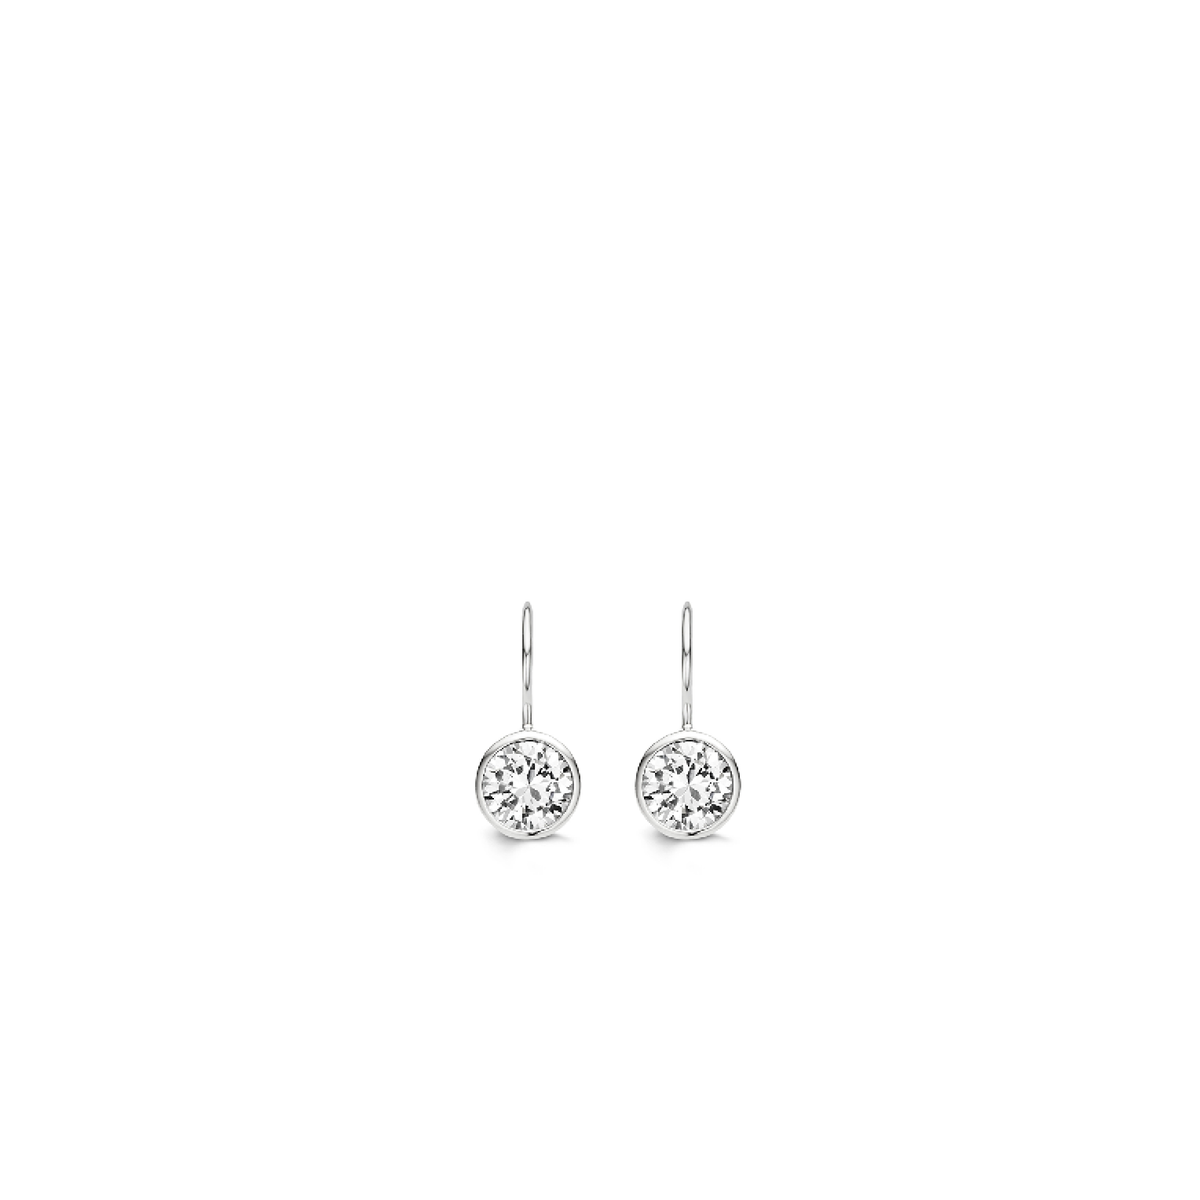 TI SENTO - Milano Earrings 7653ZI